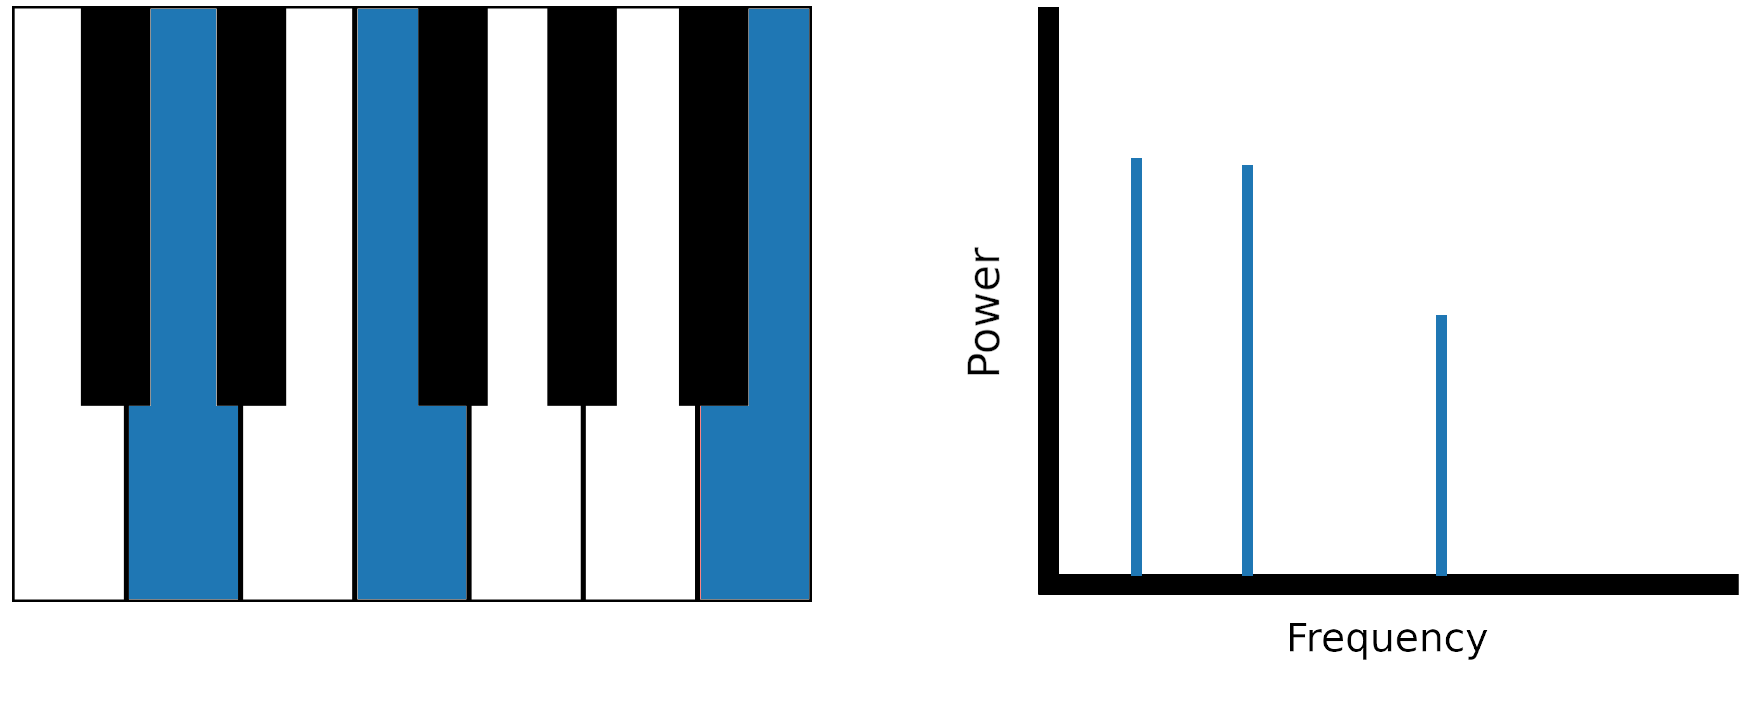 Piano keys corresponding to peaks in a frequency spectrum